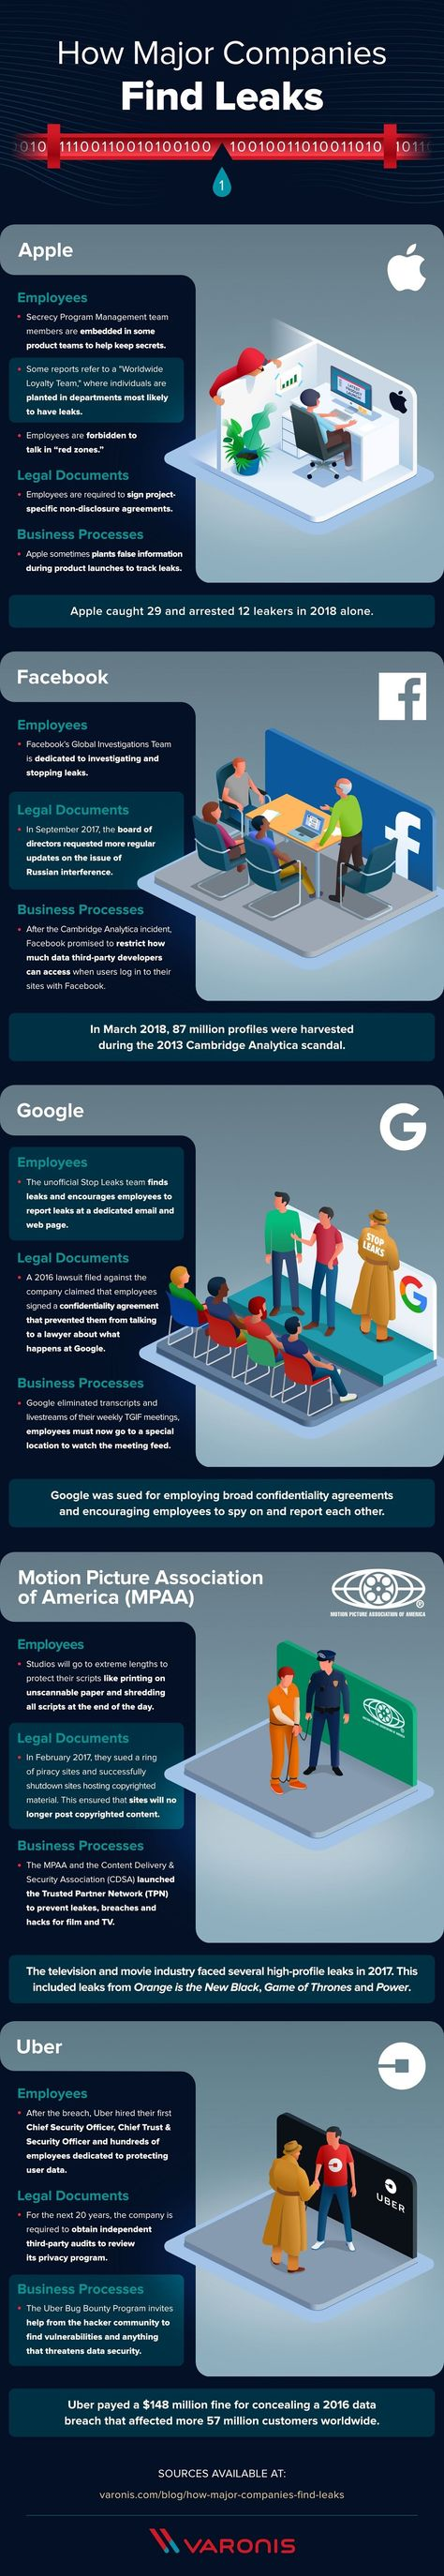 How Major Companies Find Leaks #infographic